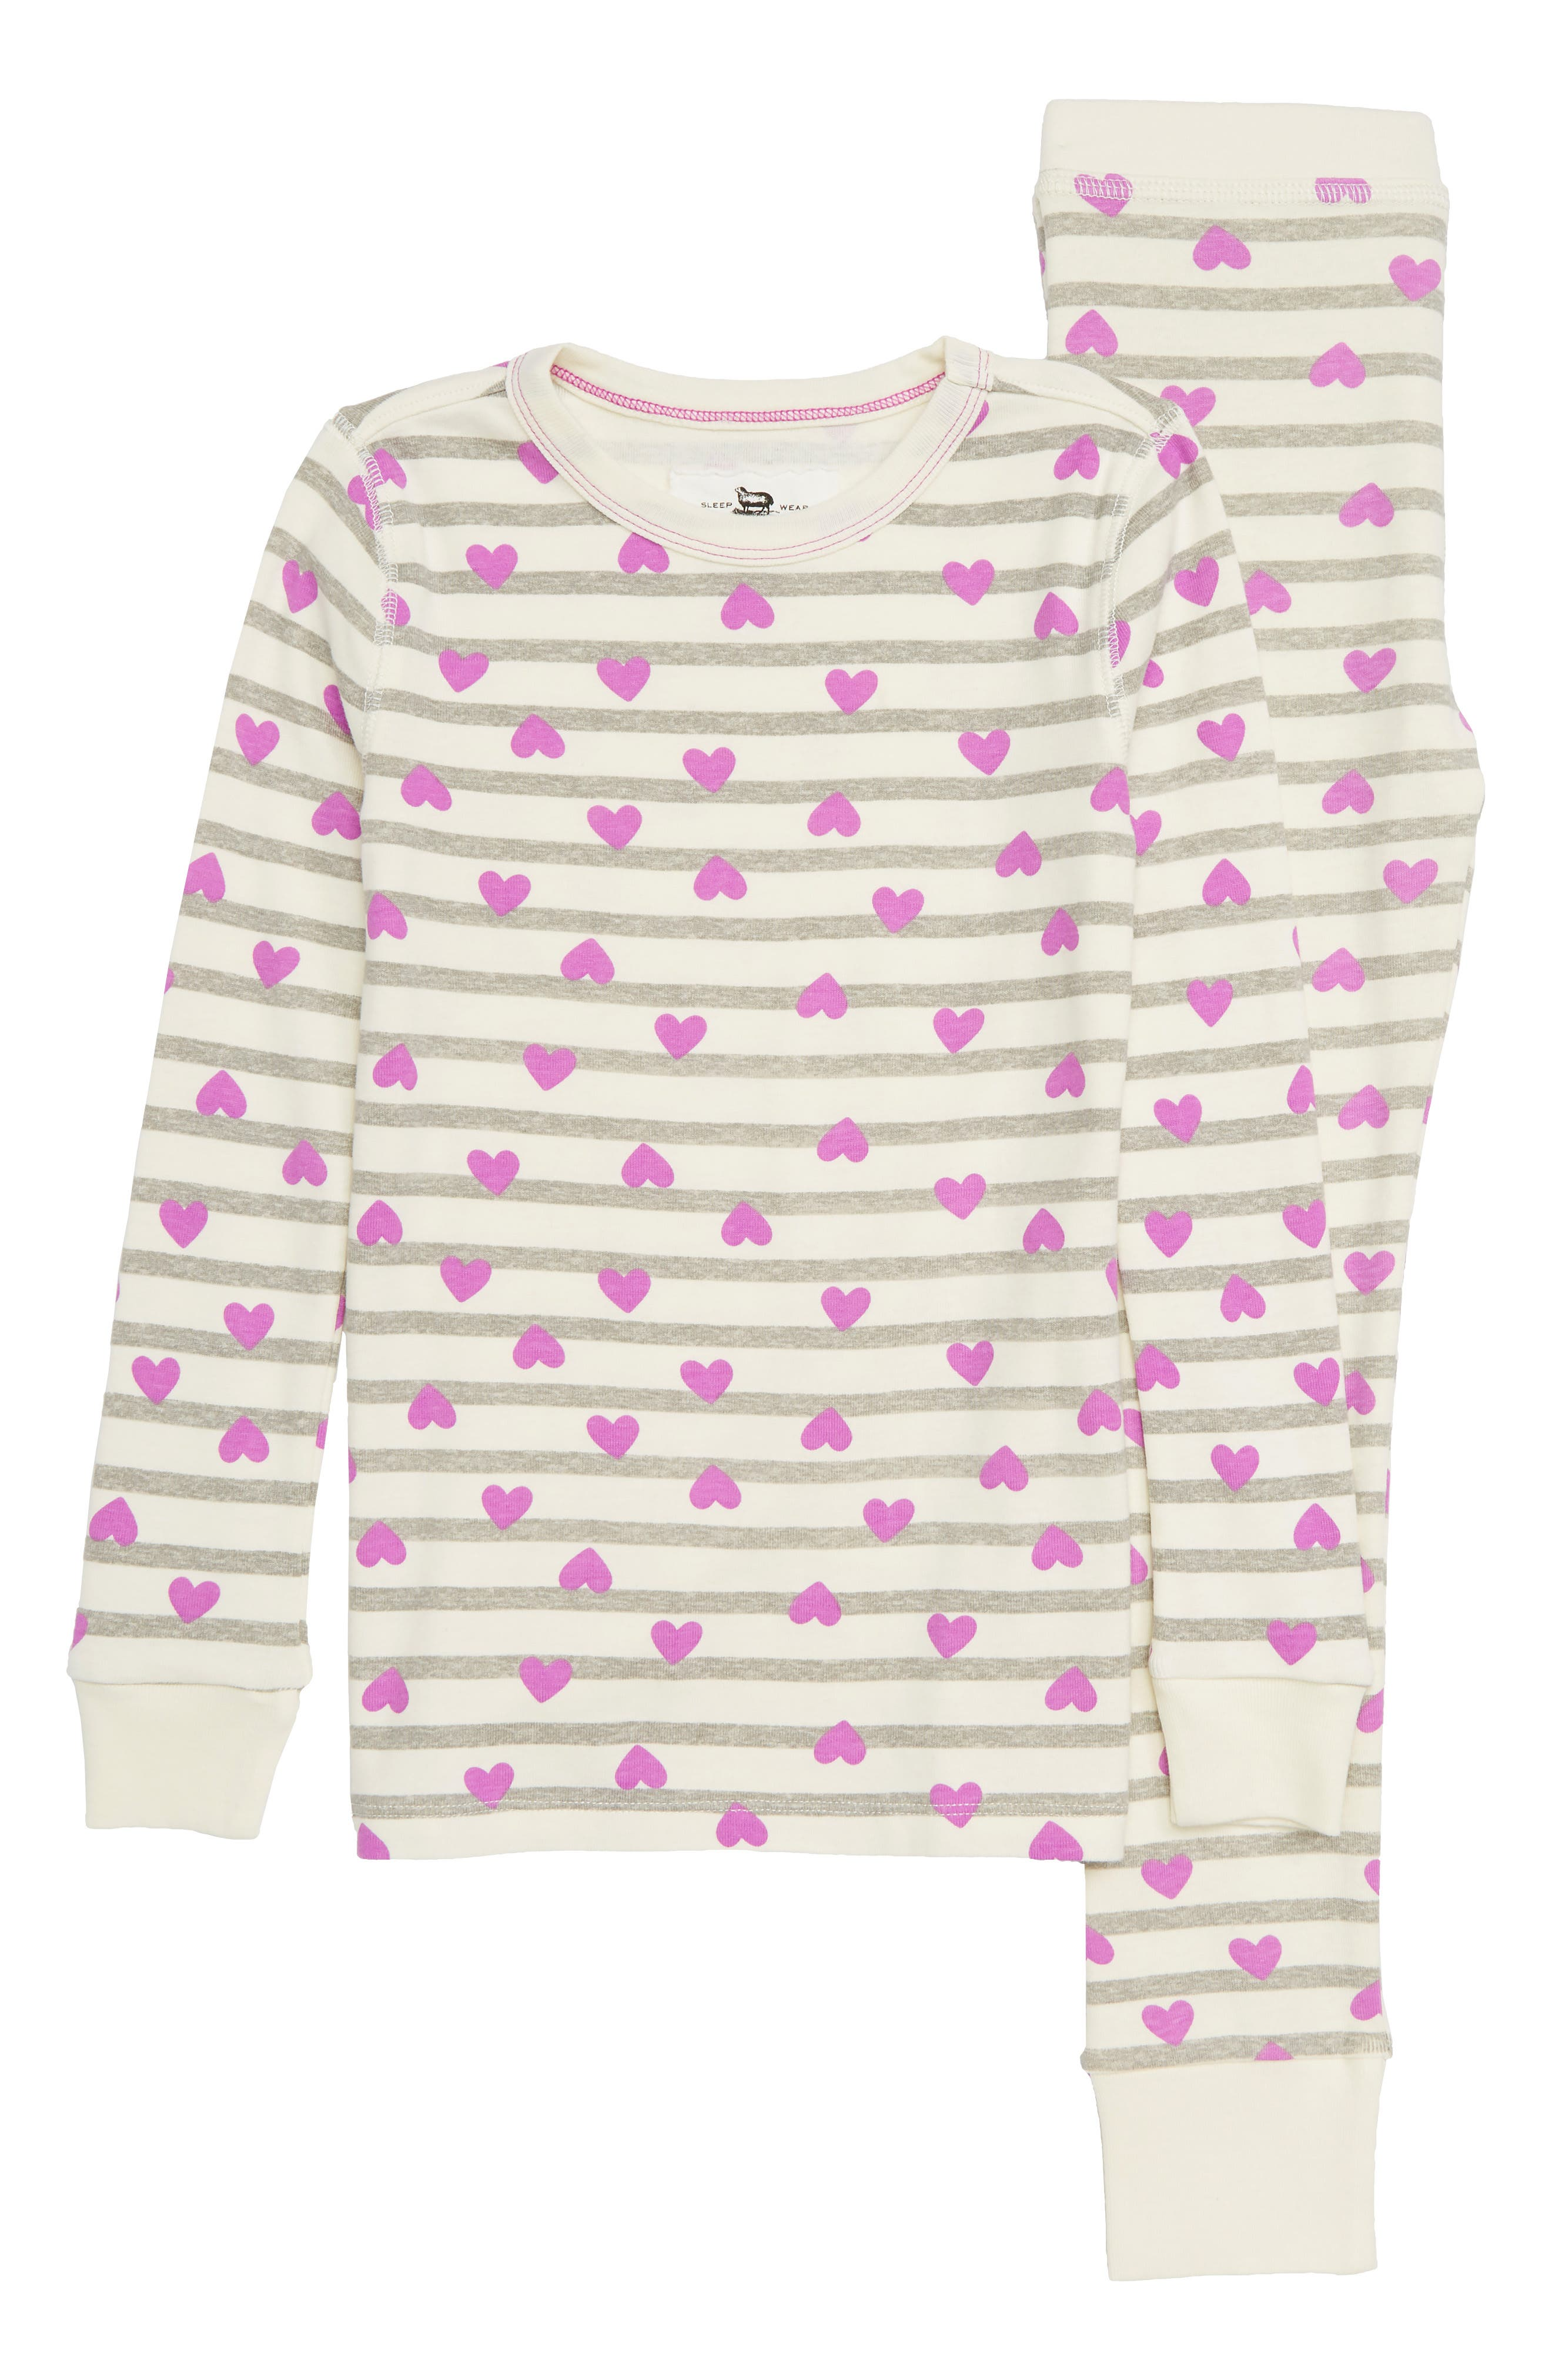 Girls Crewcuts By Jcrew Hearts  Stripes Fitted TwoPiece Pajamas Size 7  Ivory